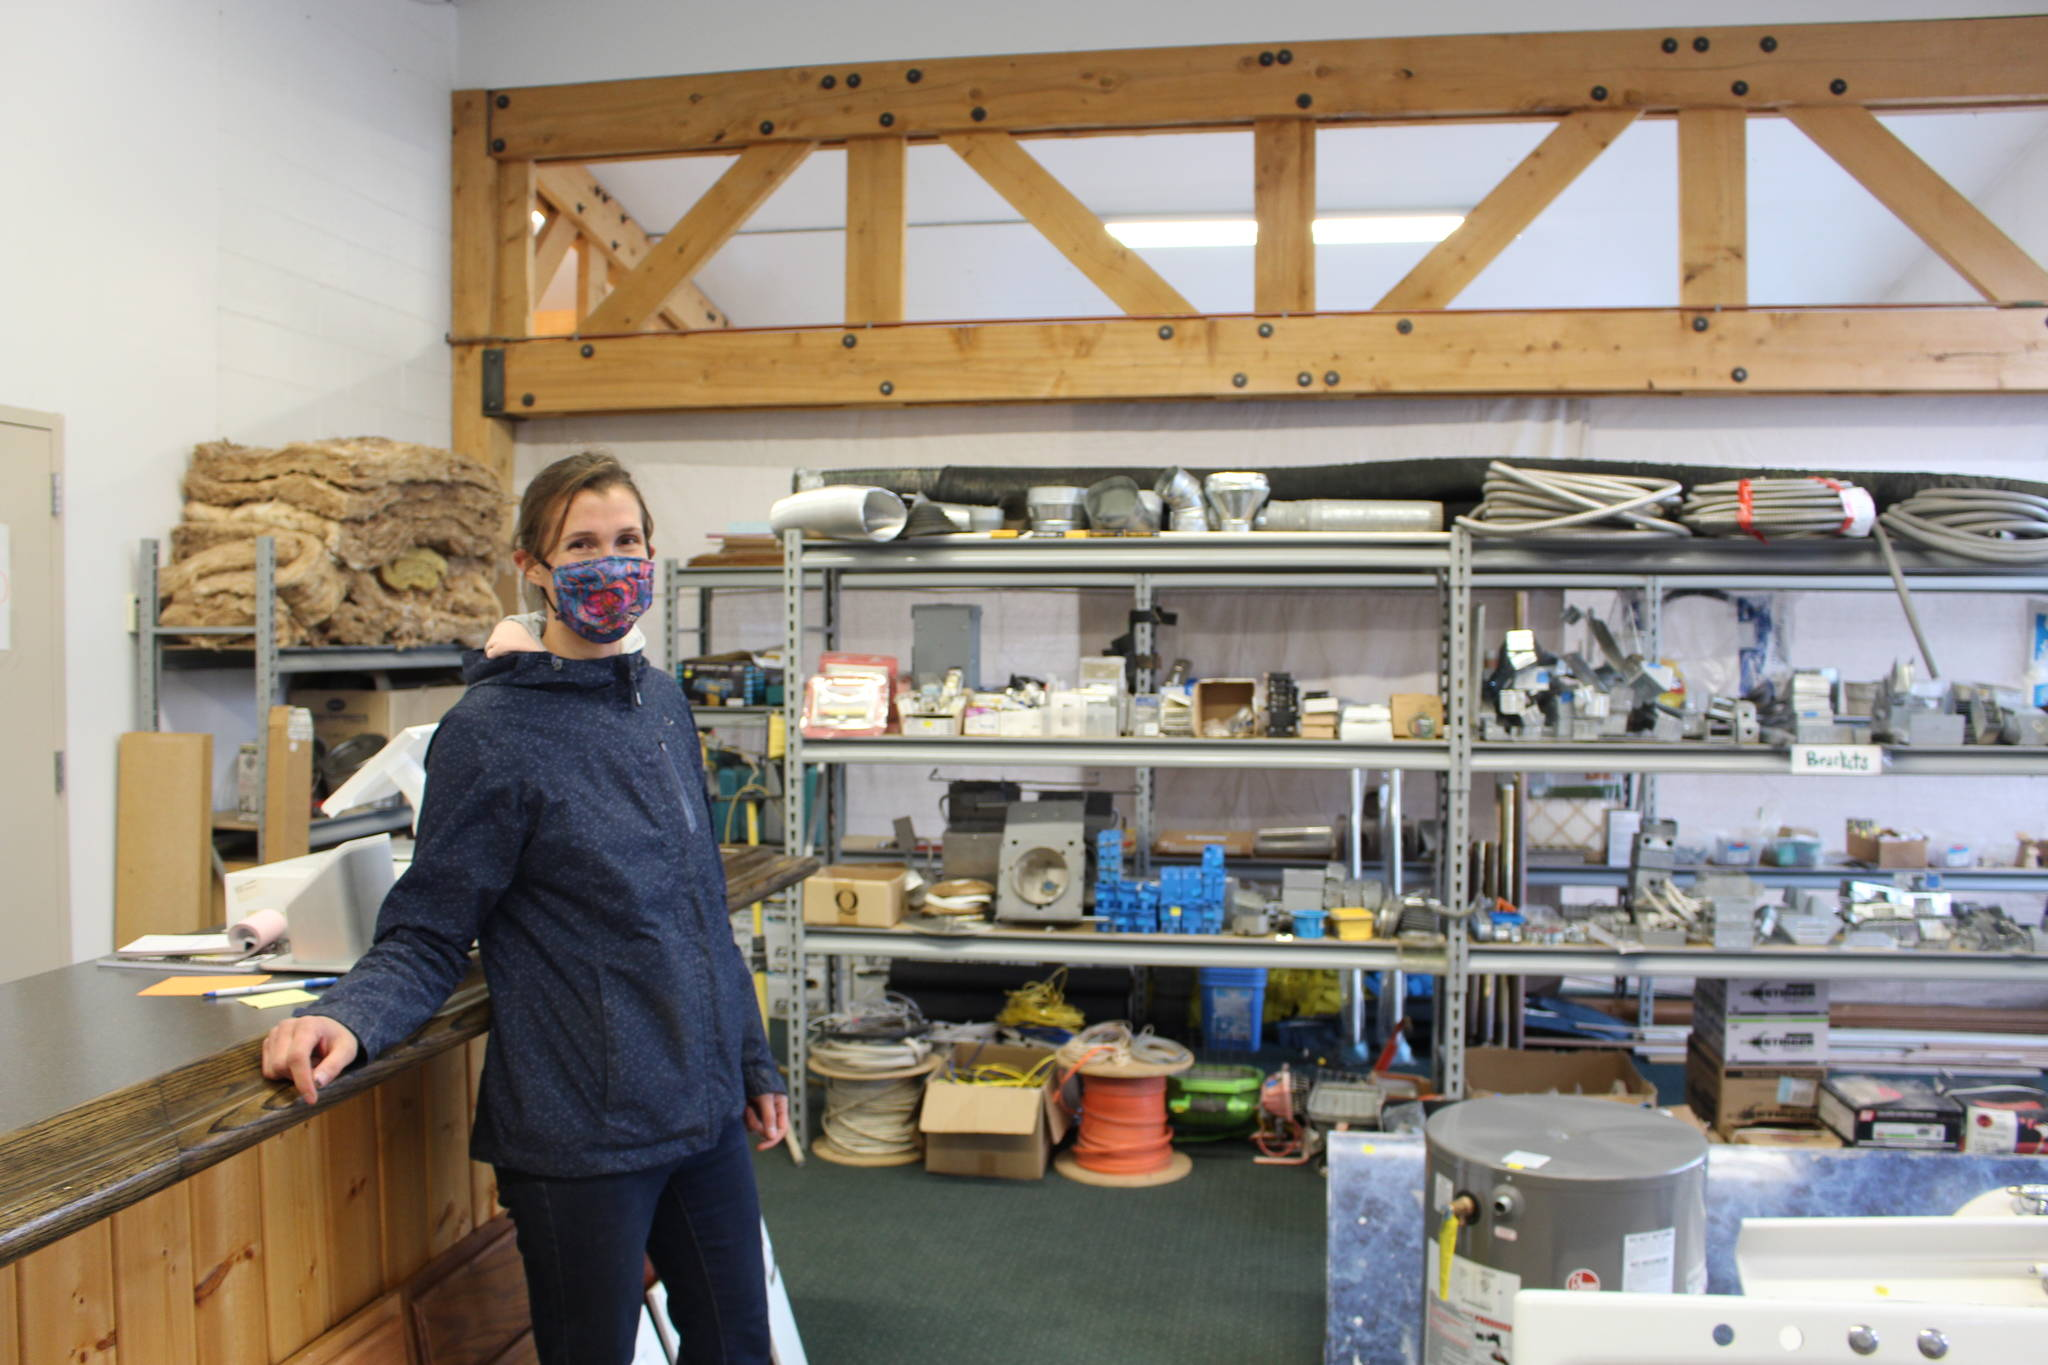 Amy Anderson, president and co-founder of BuildUP, a nonprofit thrift store for building materials, stands in the new BuildUP space that was leased thanks to the money donated by the Soldotna 100+ Women Who Care group on Sept. 24, 2020. (Photo by Brian Mazurek/Peninsula Clarion)